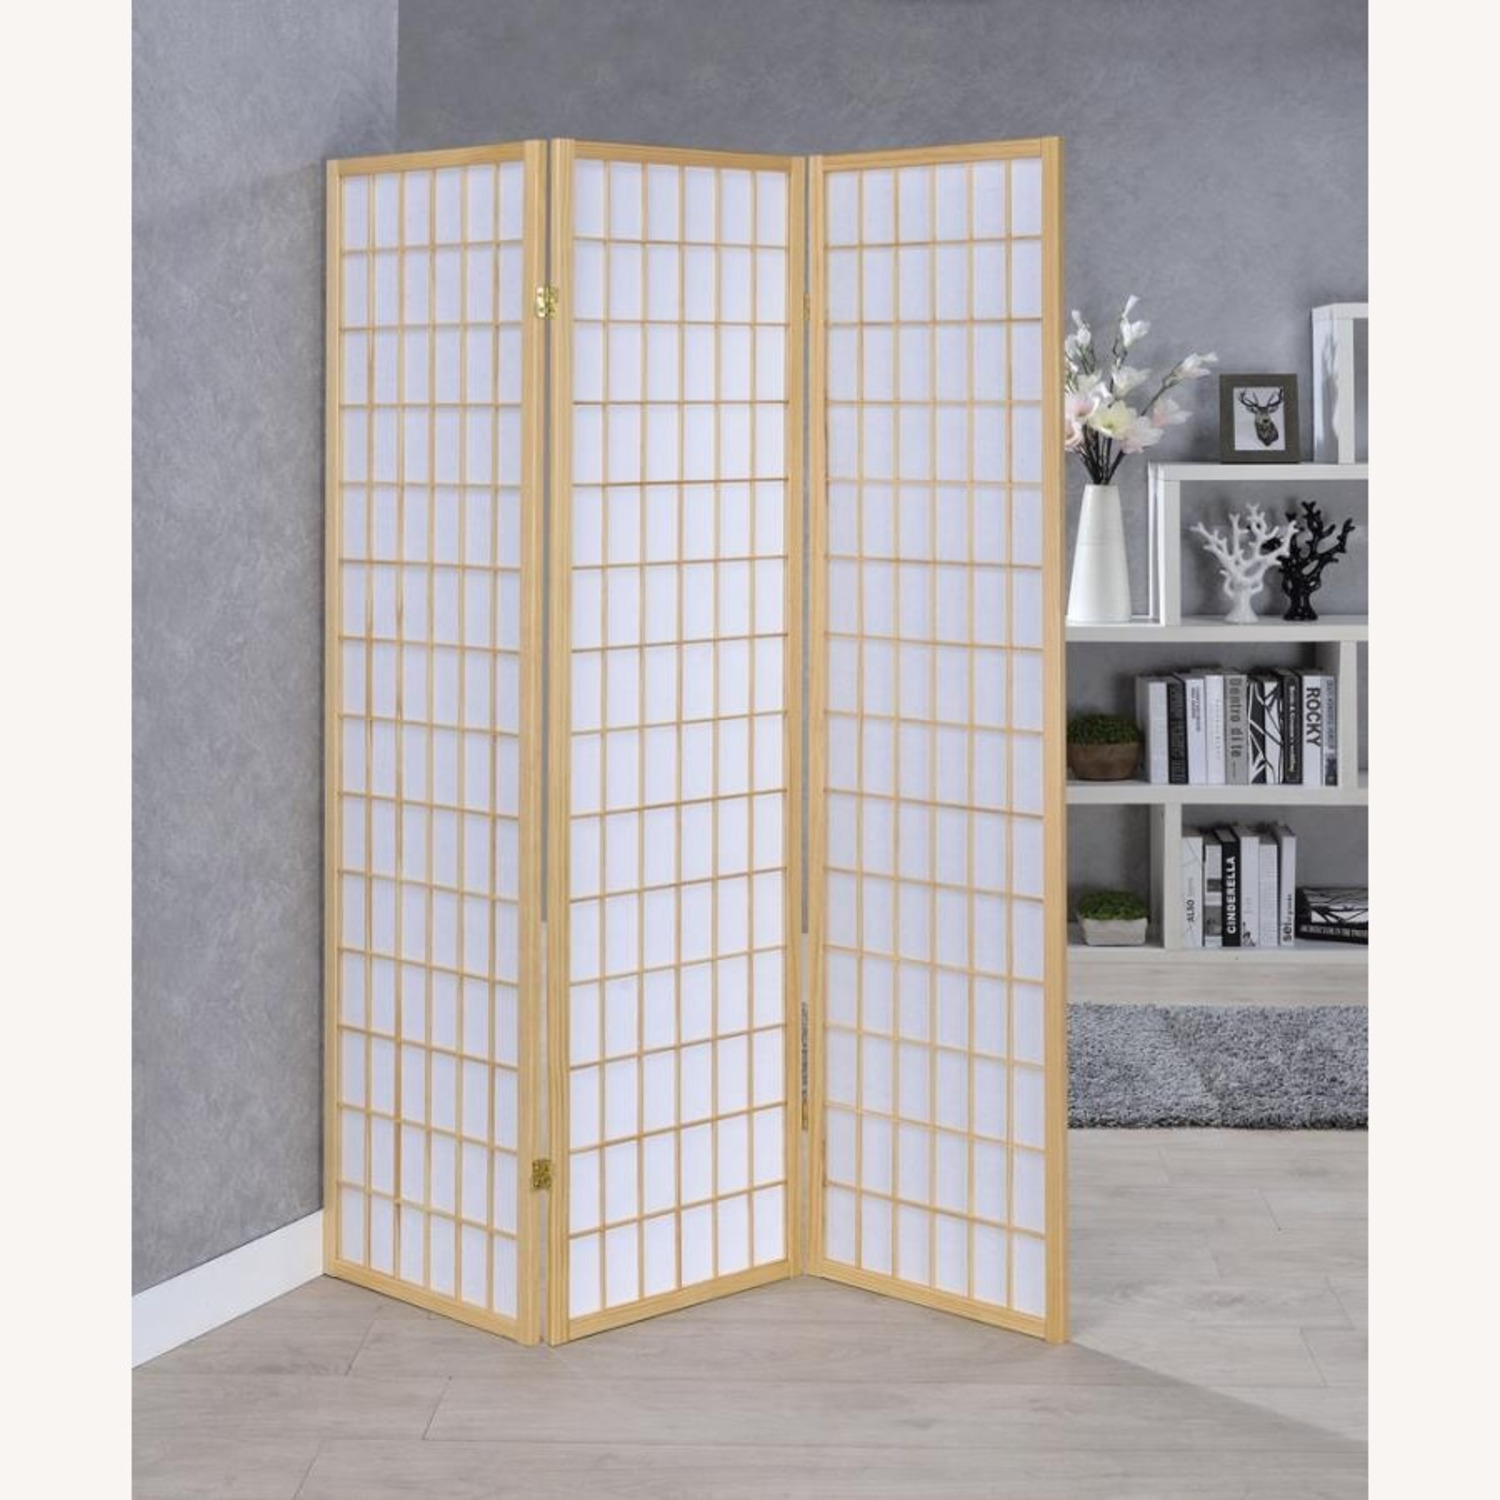 Screen In White Panels W/ Natural Wood Borders - image-2